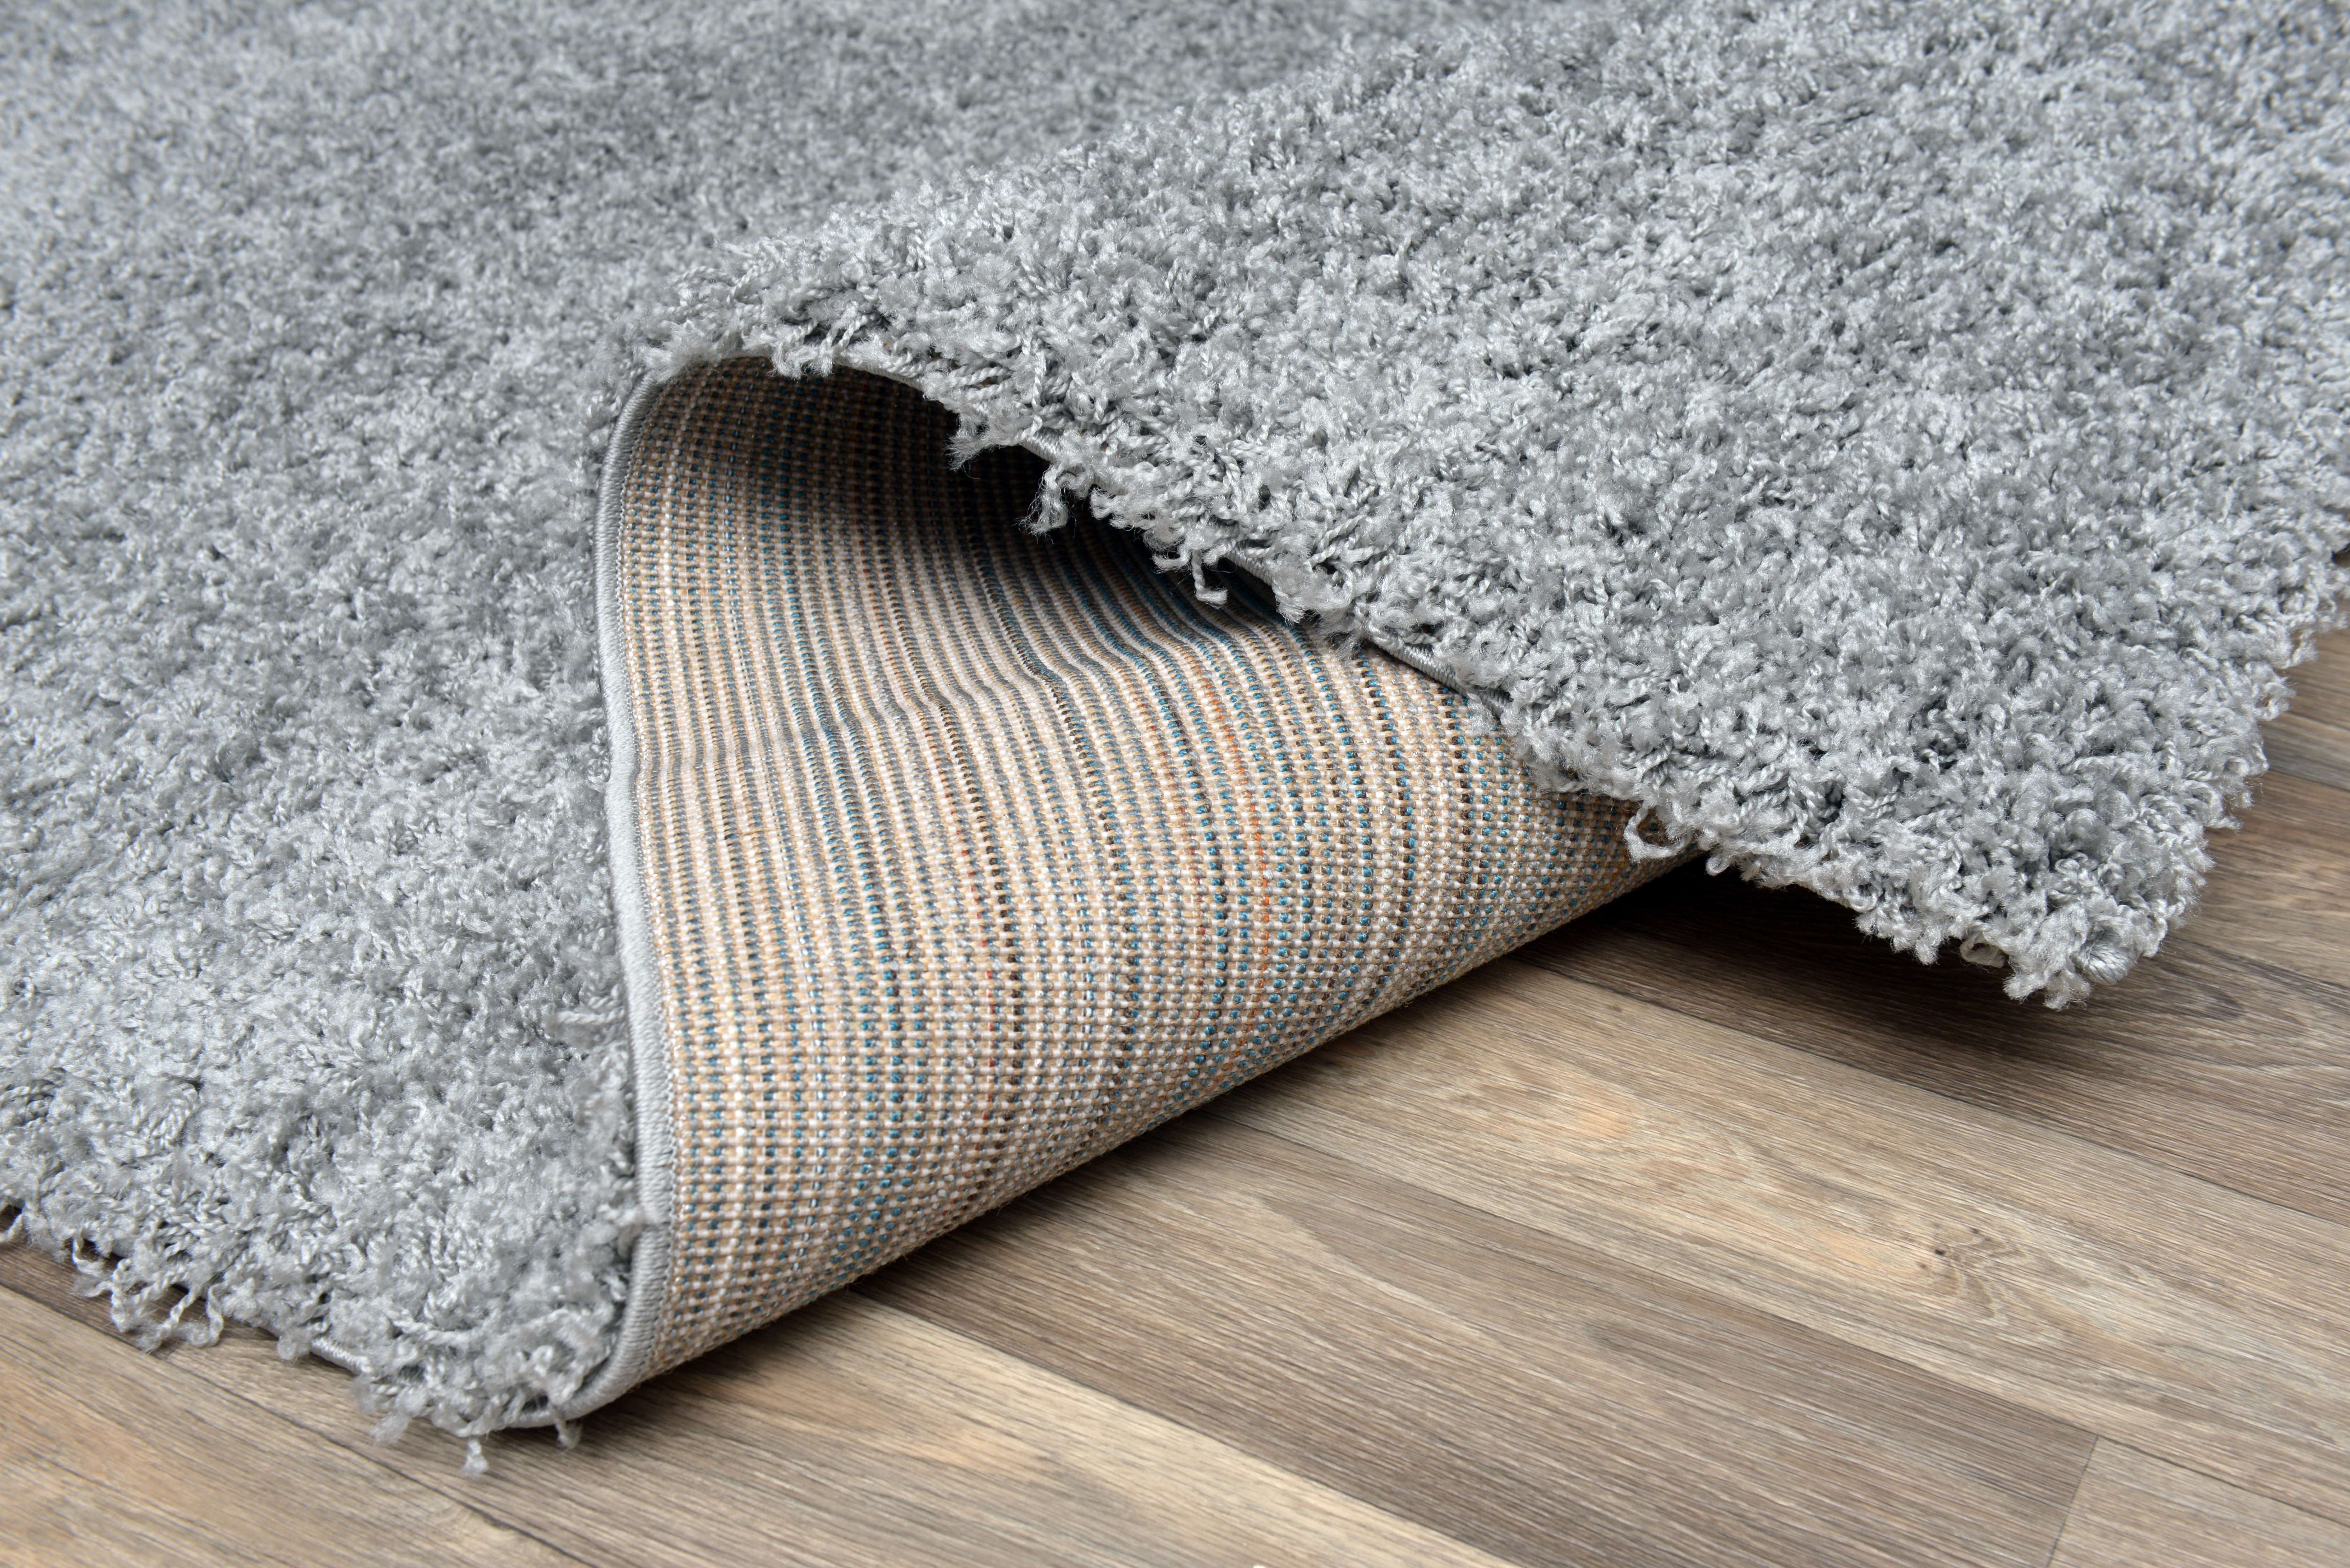 Steps in Carpet Installation